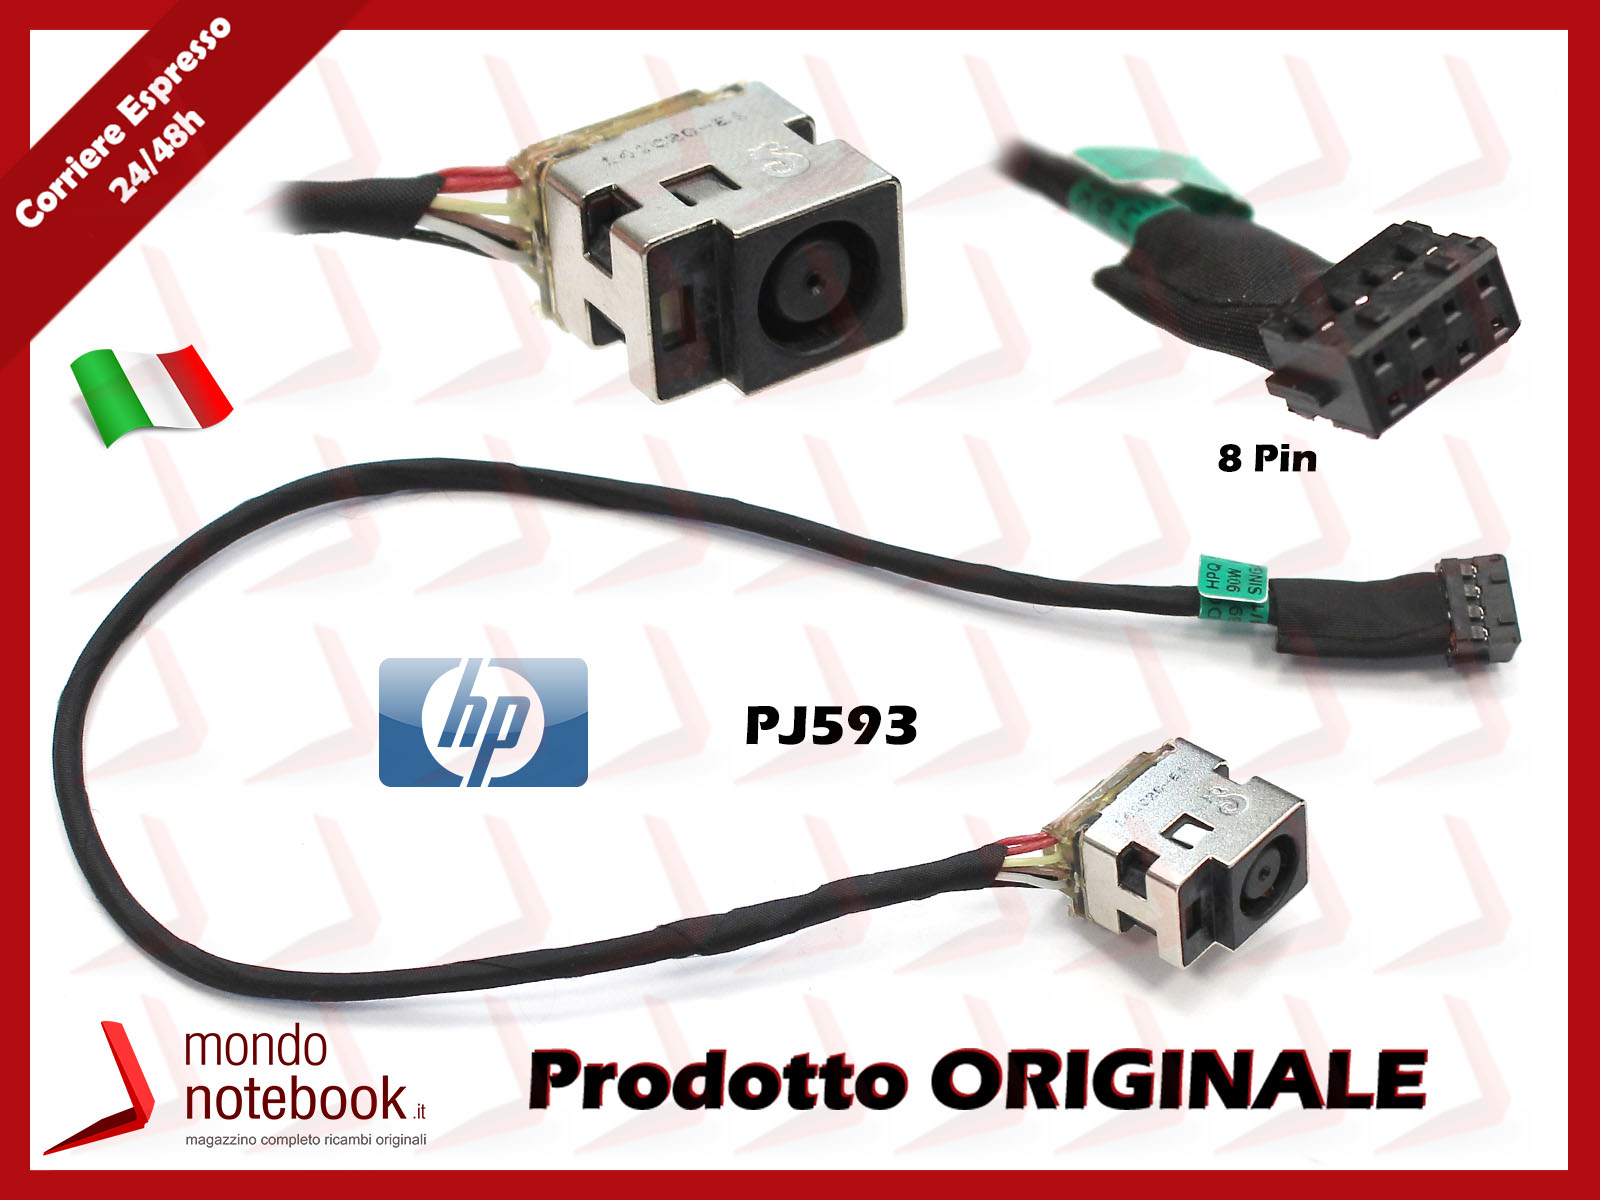 https://www.mondonotebook.it/6856/copri-cerniera-toshiba-portge-r700-destro.jpg